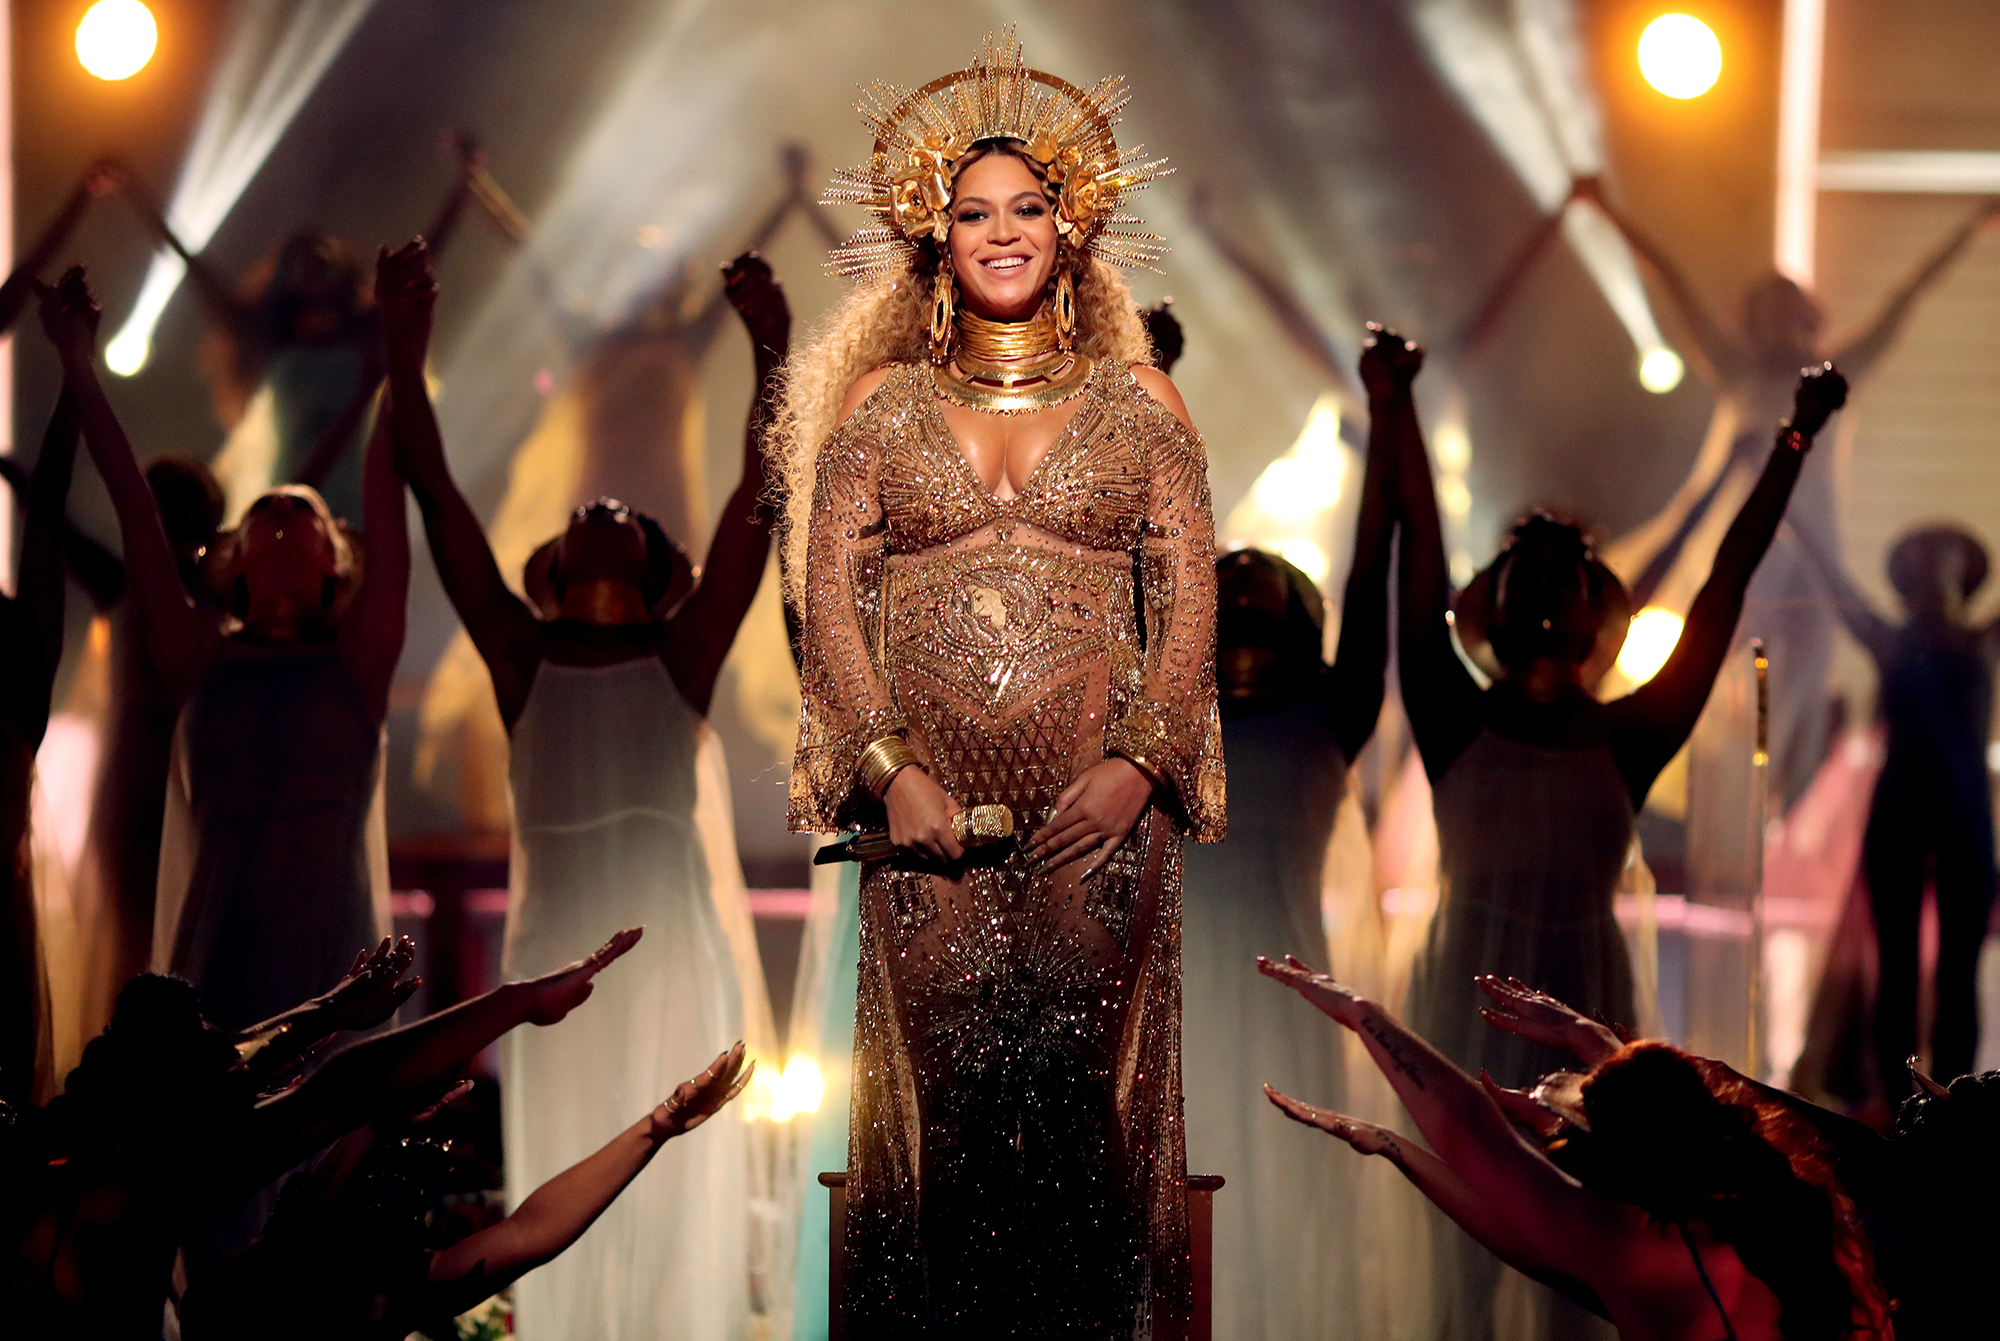 Beyonce Reveals the Super Strict Diet She Started Post-Twins - Beyonce during The 59th Grammy Awards at Staples Center on February 12, 2017 in Los Angeles, California.